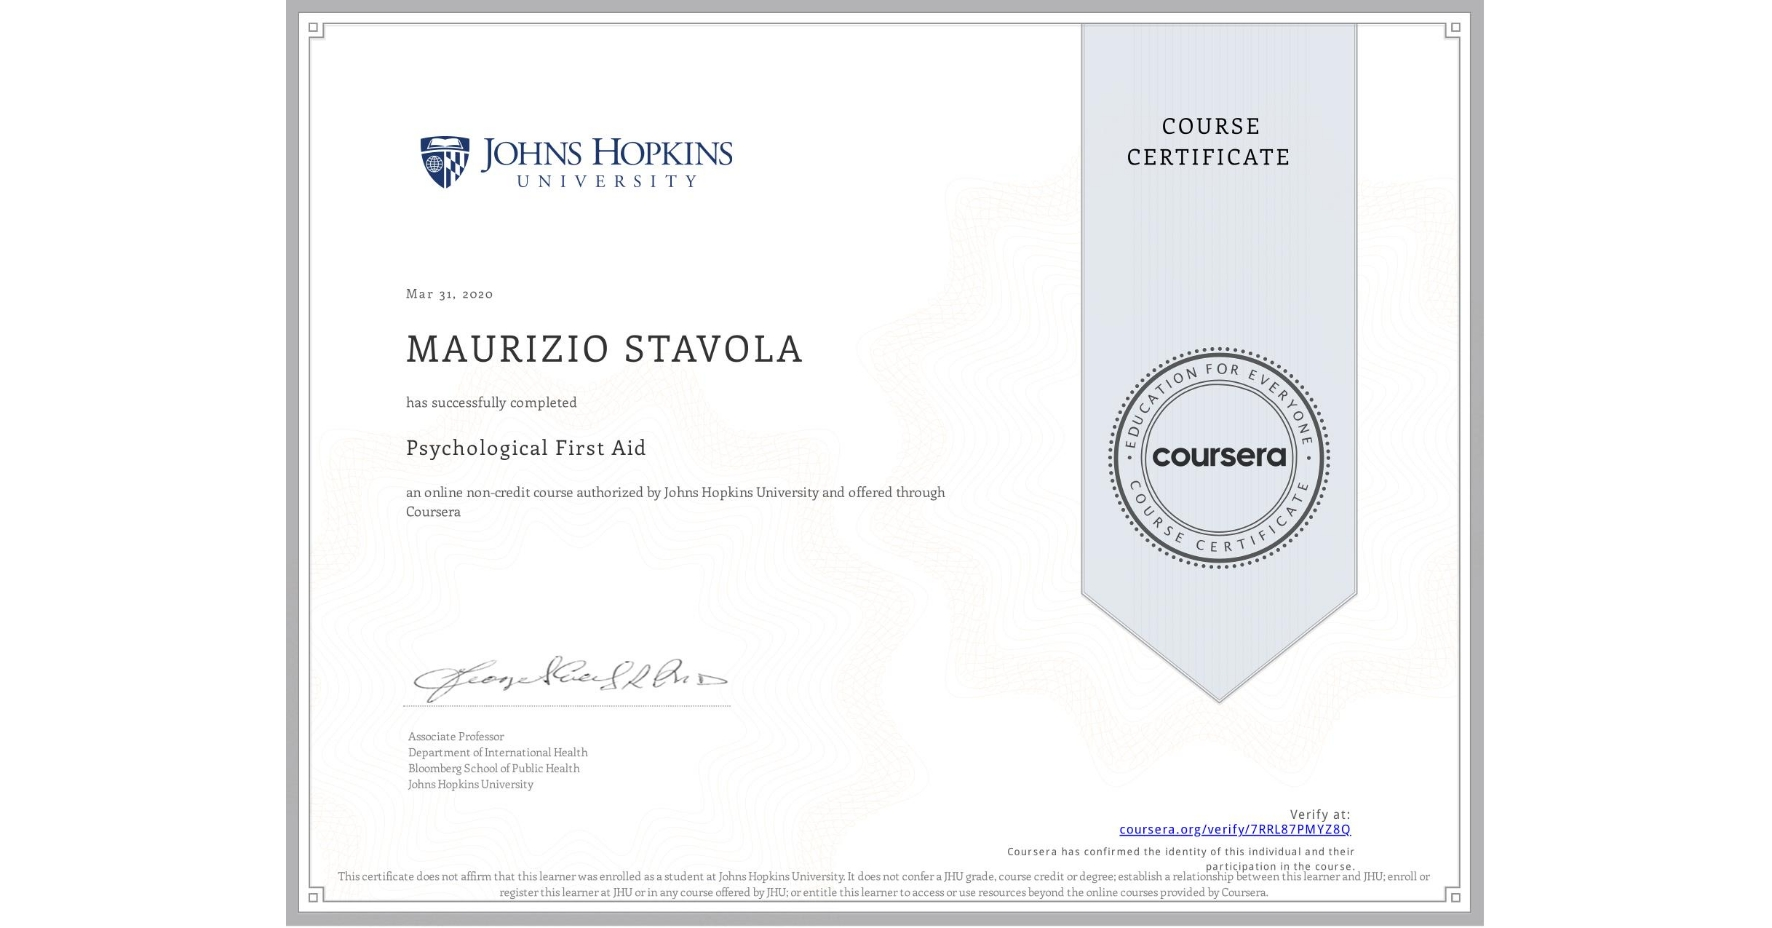 View certificate for MAURIZIO STAVOLA, Psychological First Aid, an online non-credit course authorized by Johns Hopkins University and offered through Coursera